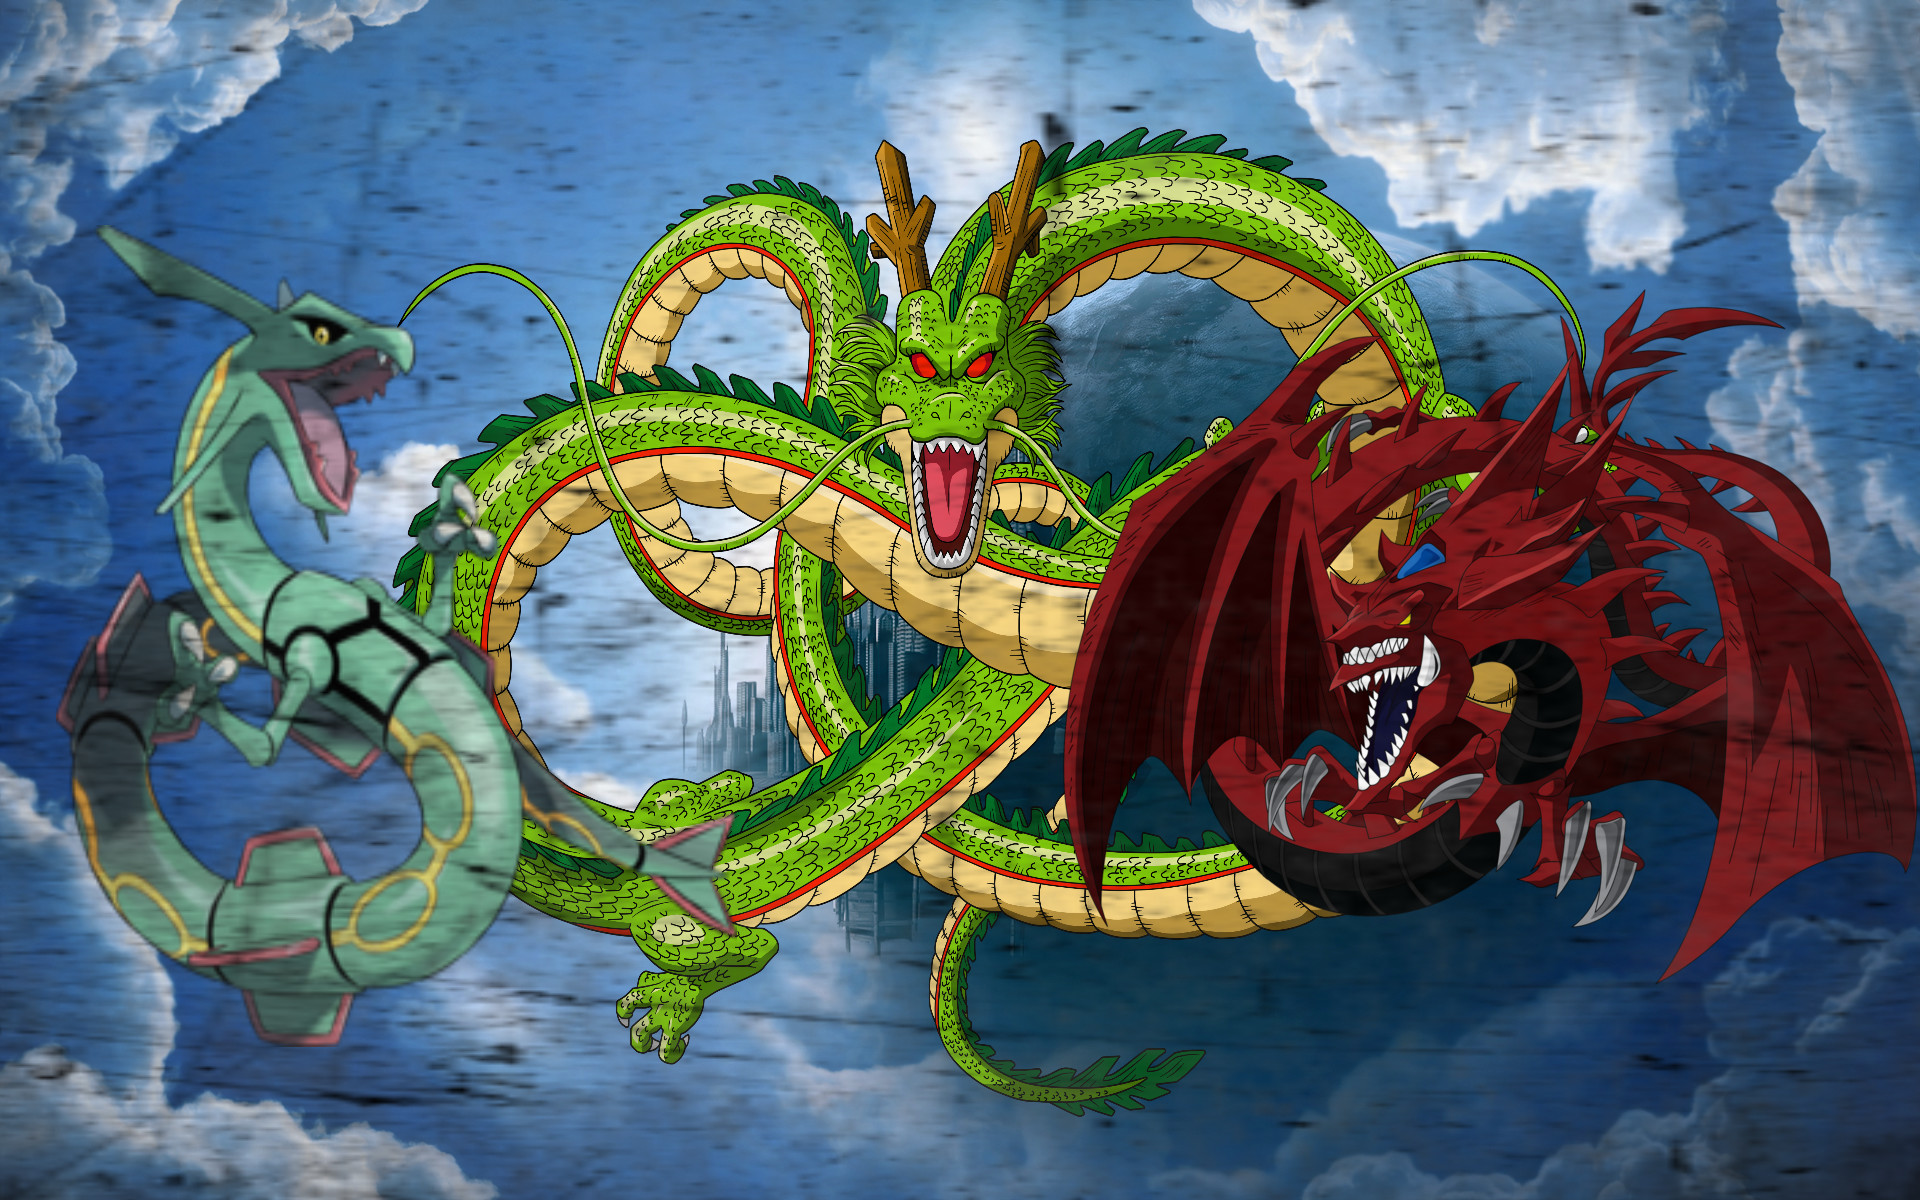 Yugioh Slifer The Sky Dragon Wallpaper 183 ① Wallpapertag